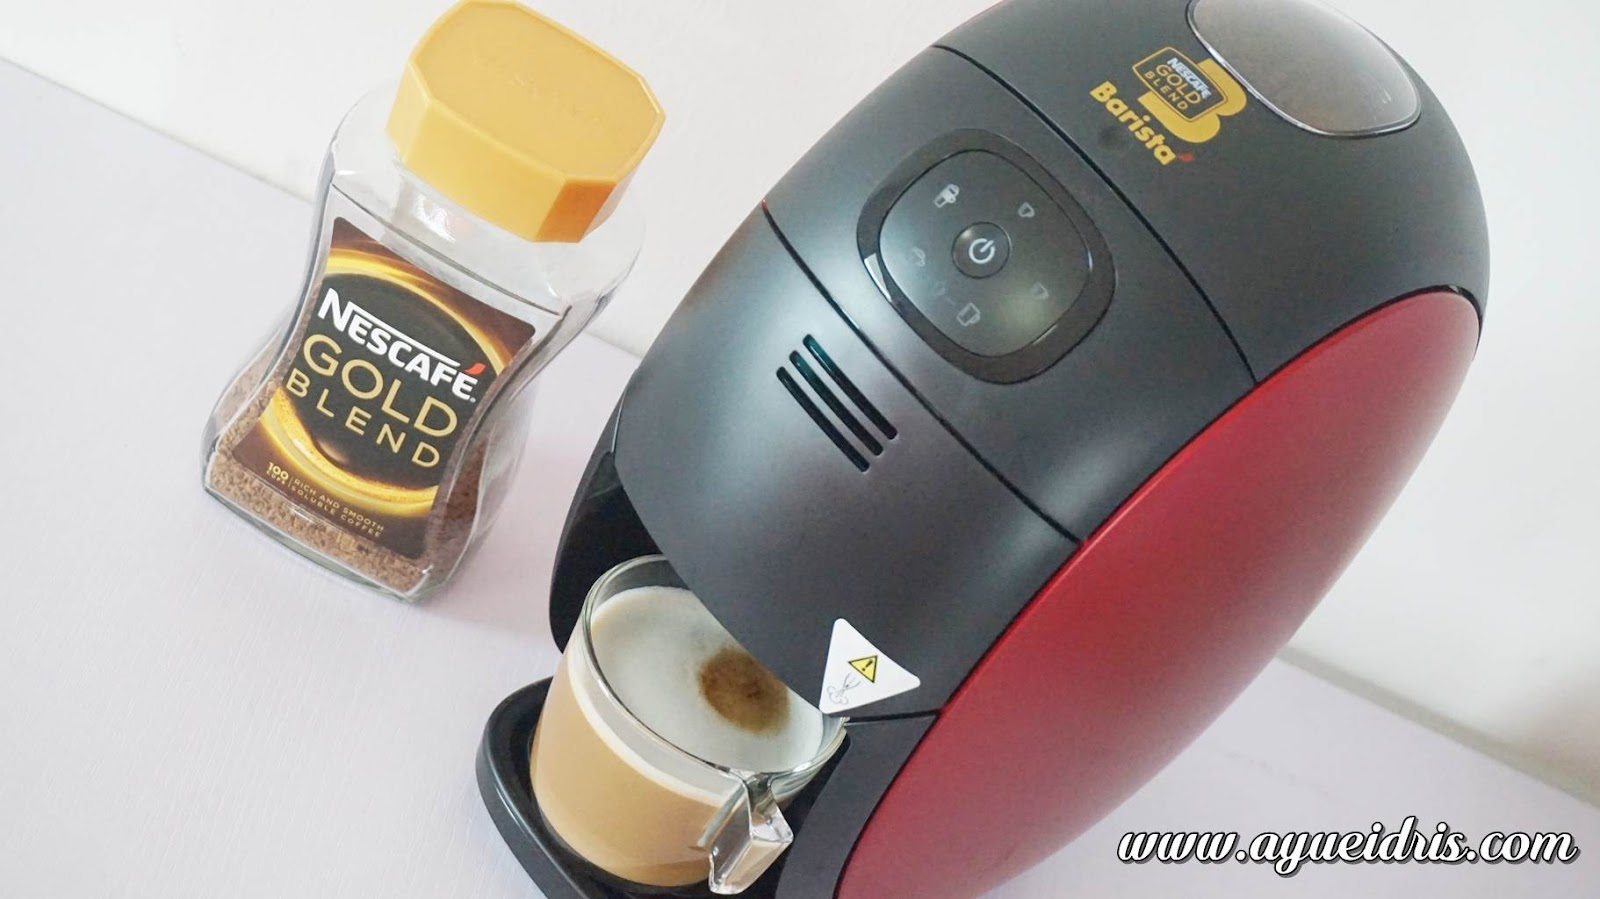 Nescafe Gold Barista Coffee Machine cara guna harga (40).JPG